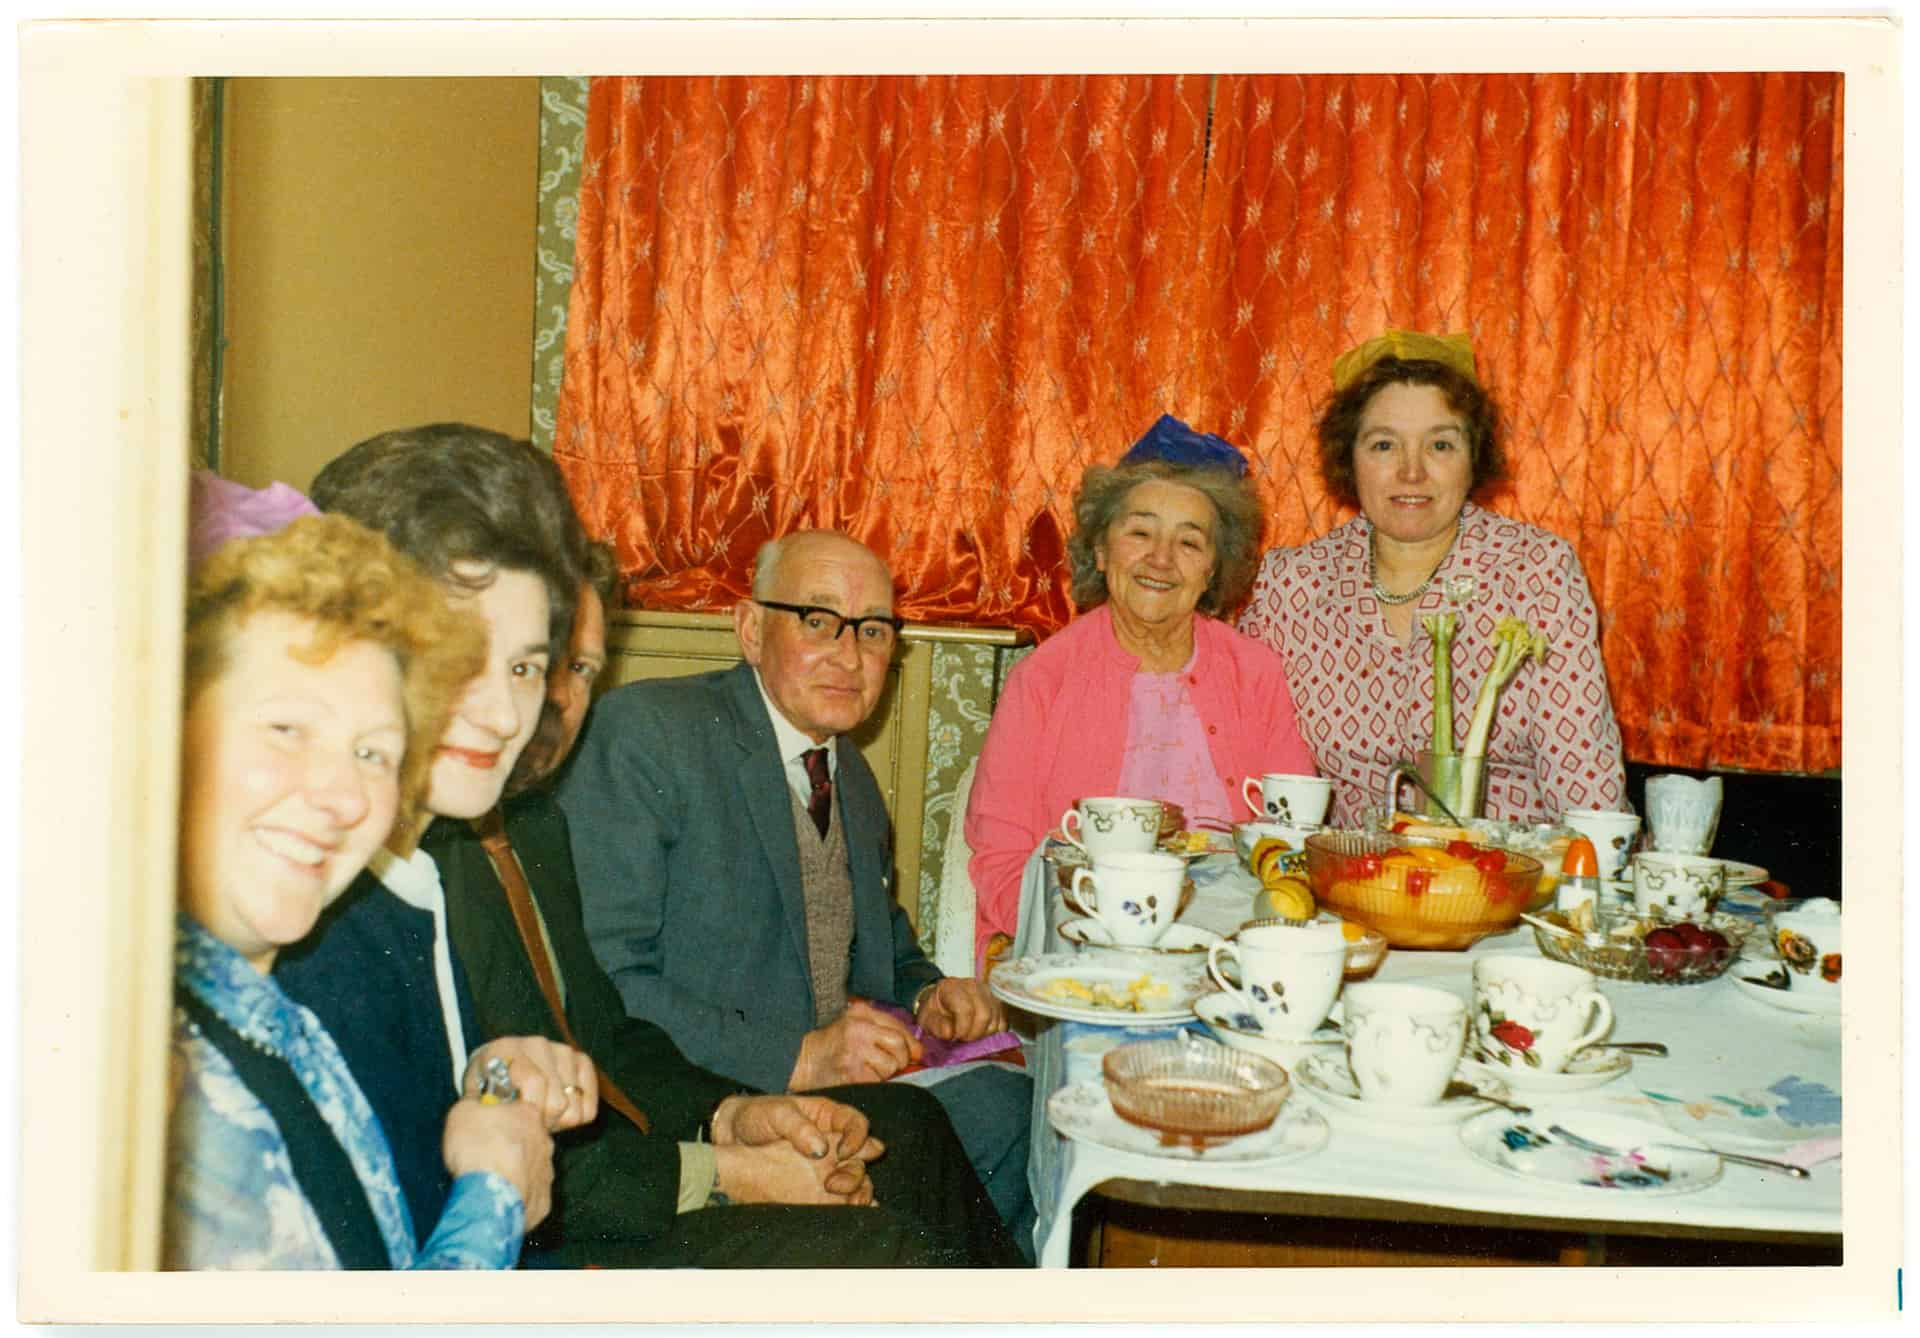 Family meal, Dudley, 1974. Photography shared from the personal collection of Mike Poulton.